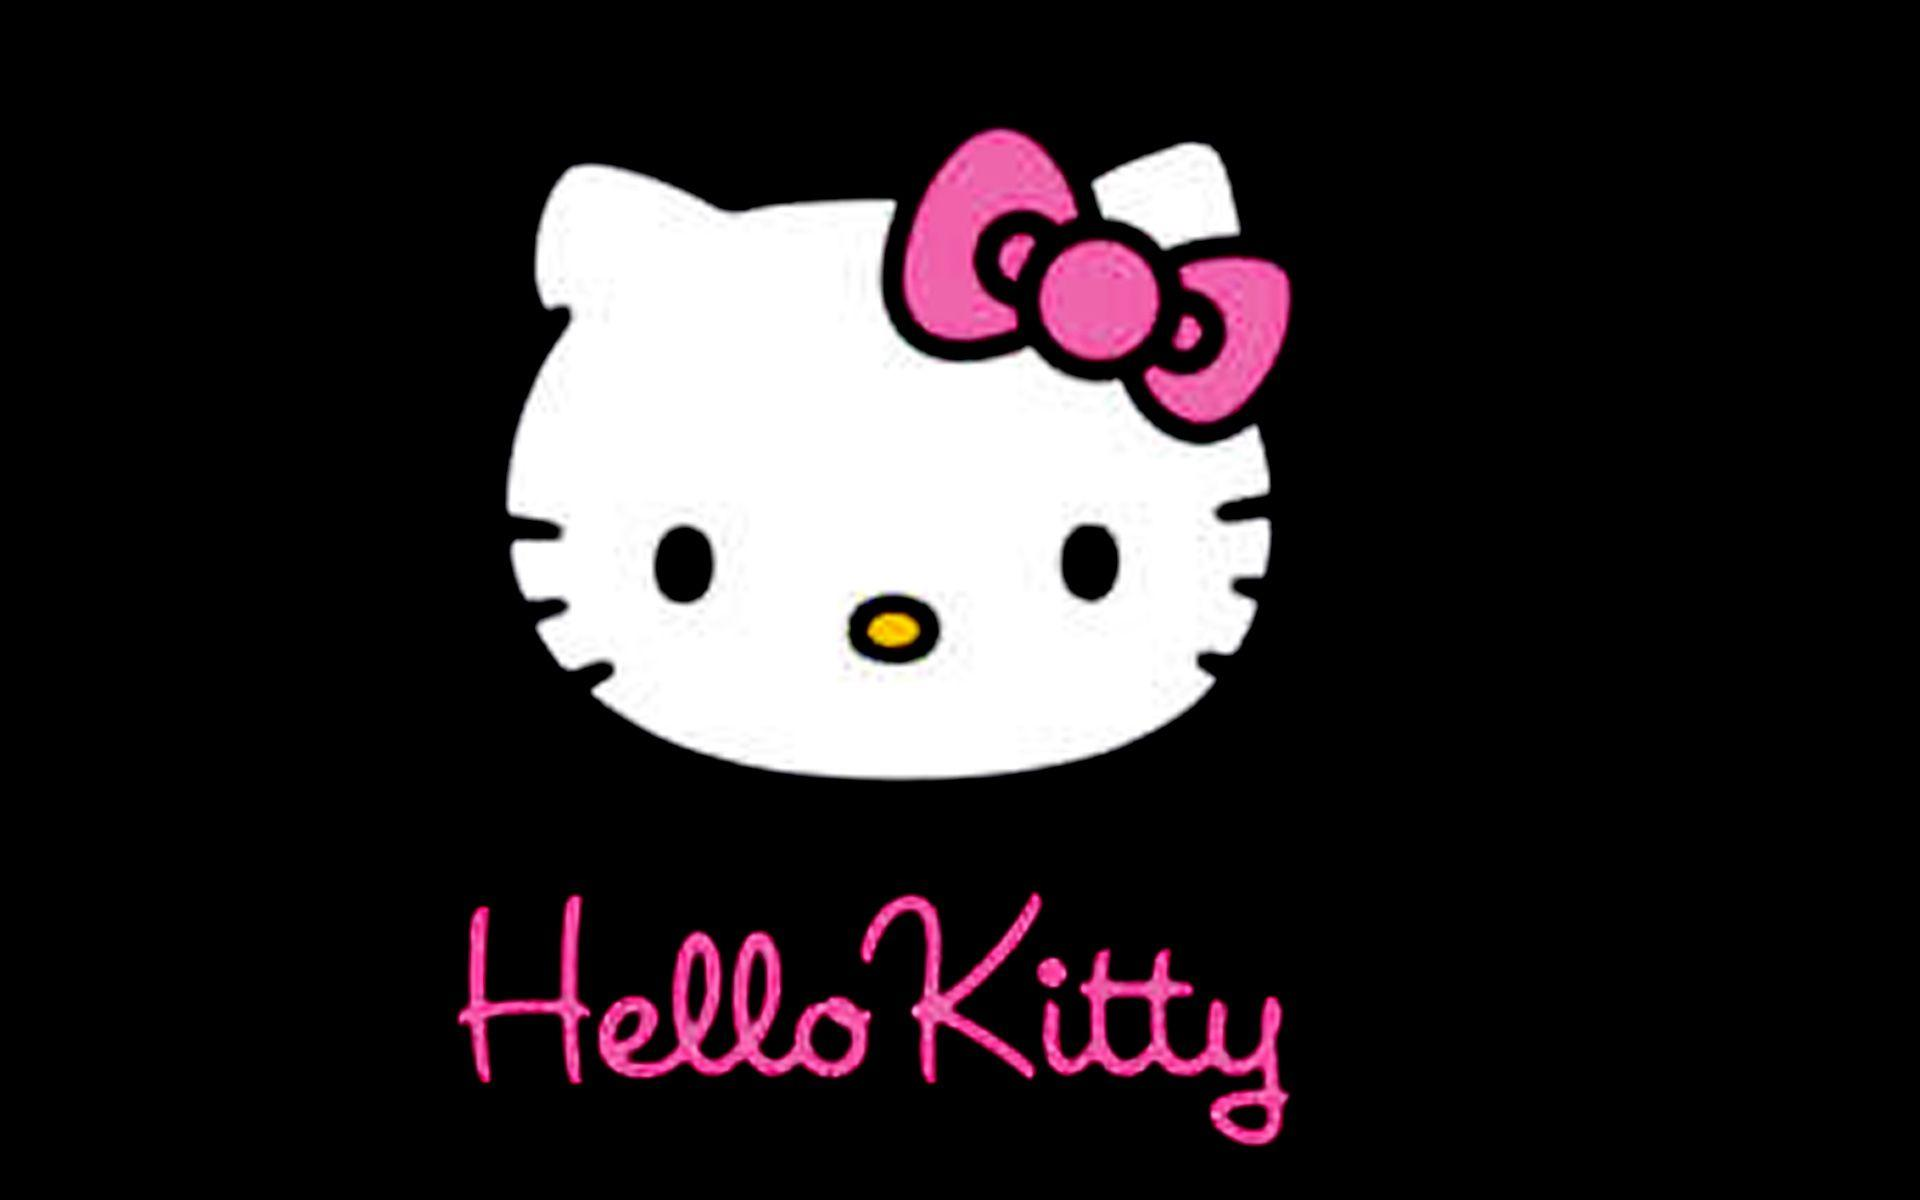 Hello Kitty Backgrounds For Computers Hello Kitty Wallpapers...